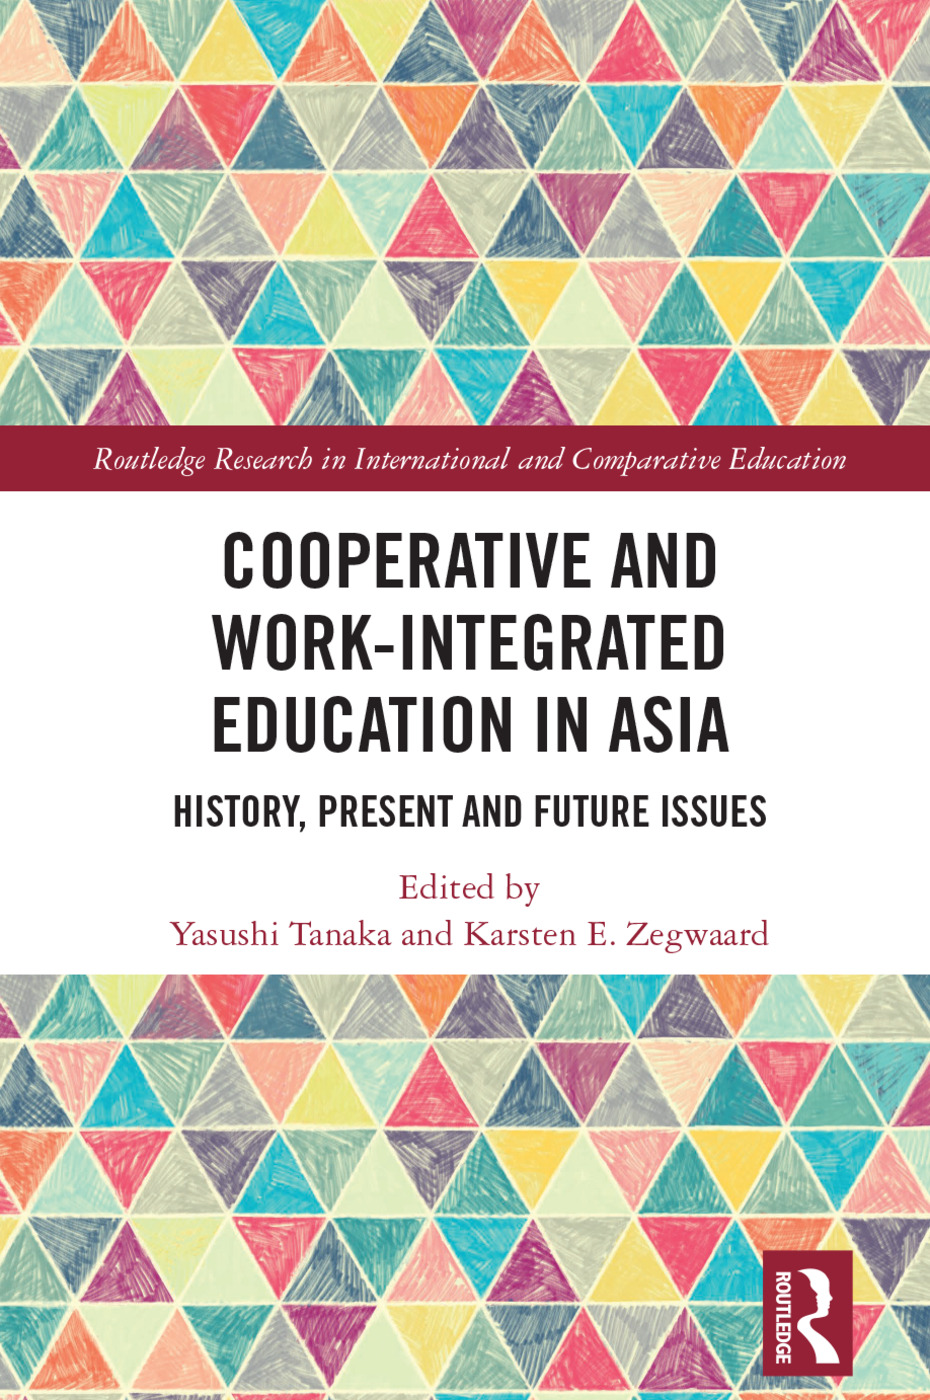 Cooperative and Work-Integrated Education in Asia: History, Present and Future Issues book cover